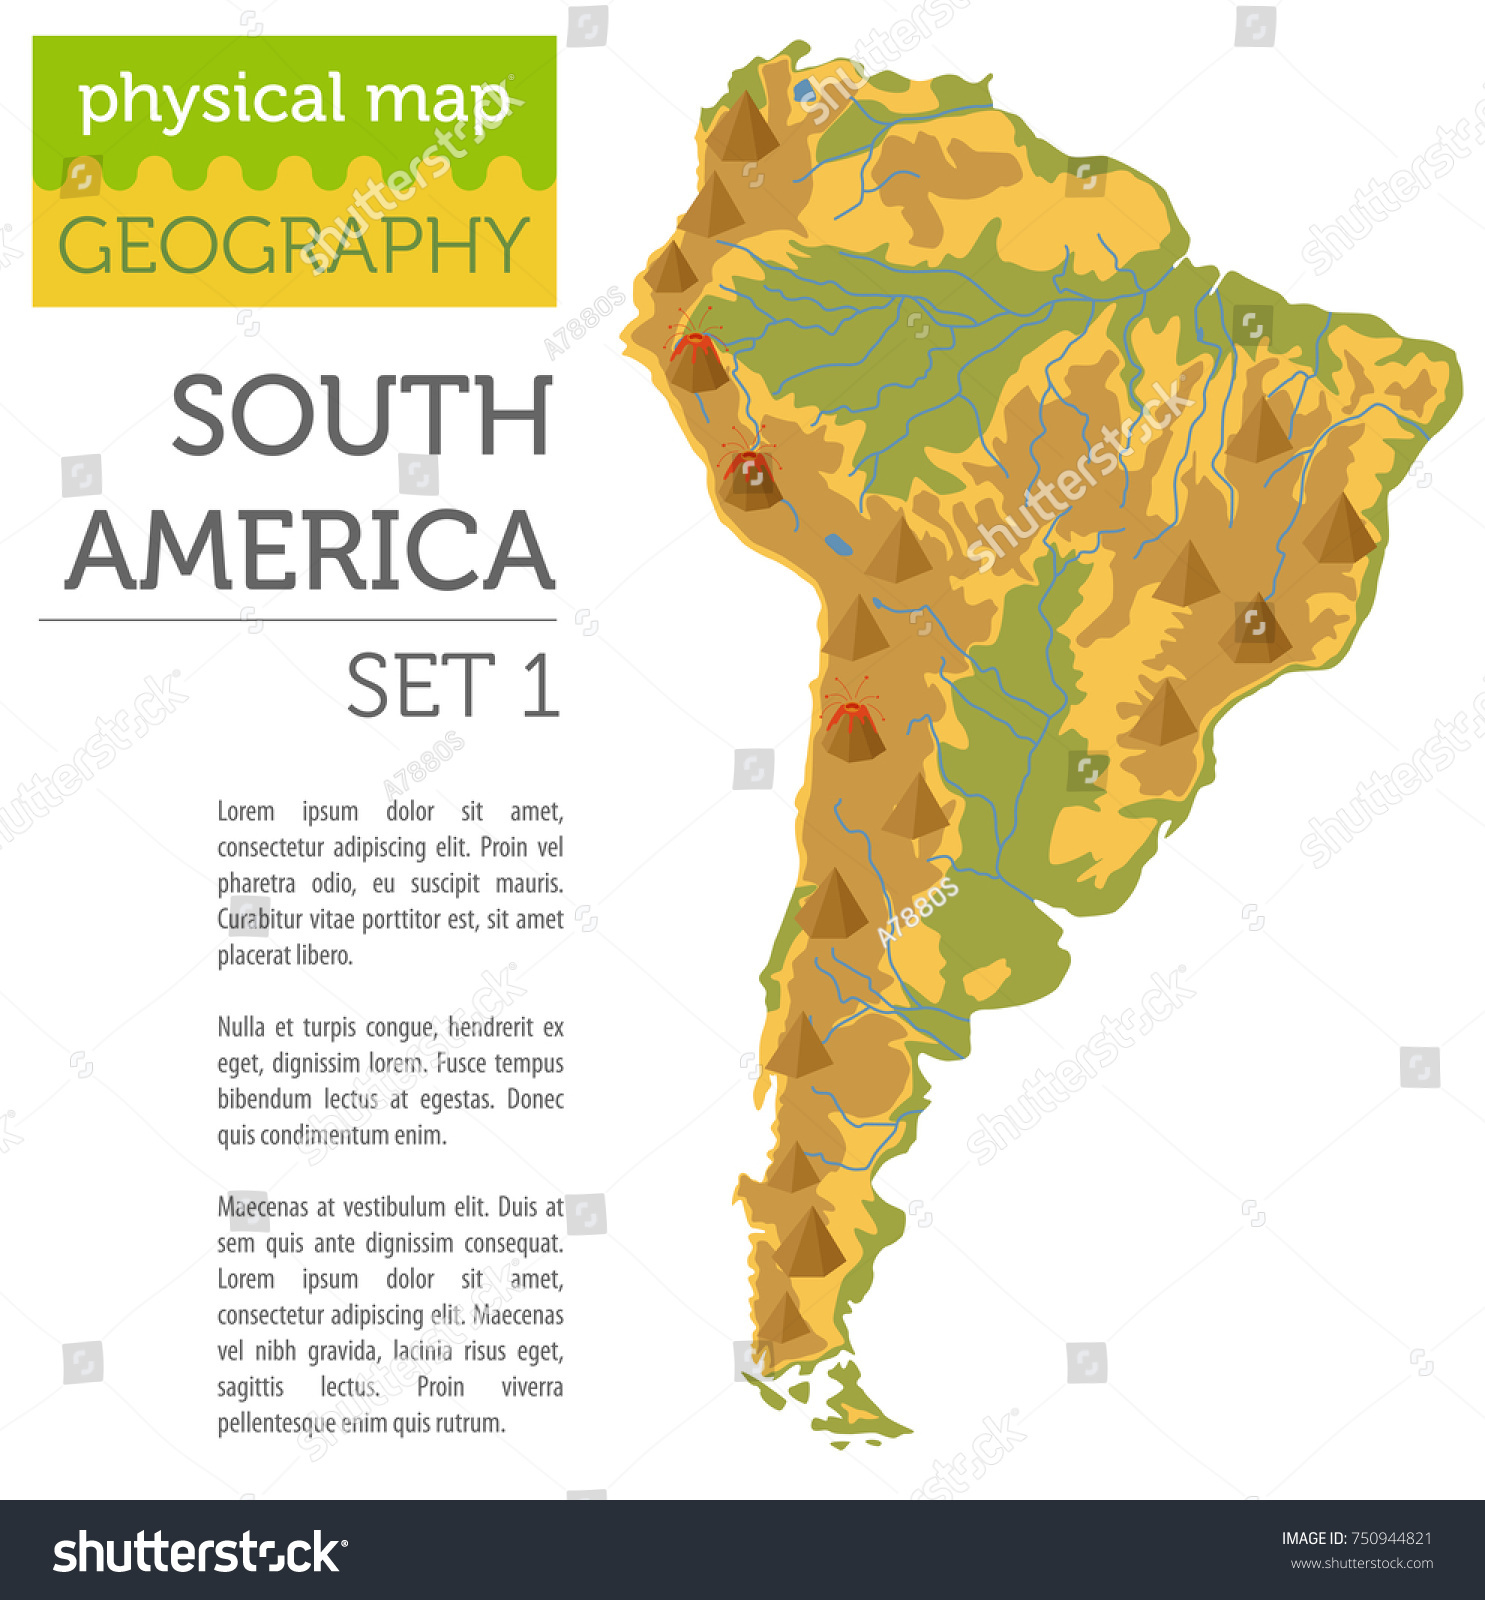 South America Physical Map Elements Build Stock Vector - South america physical map